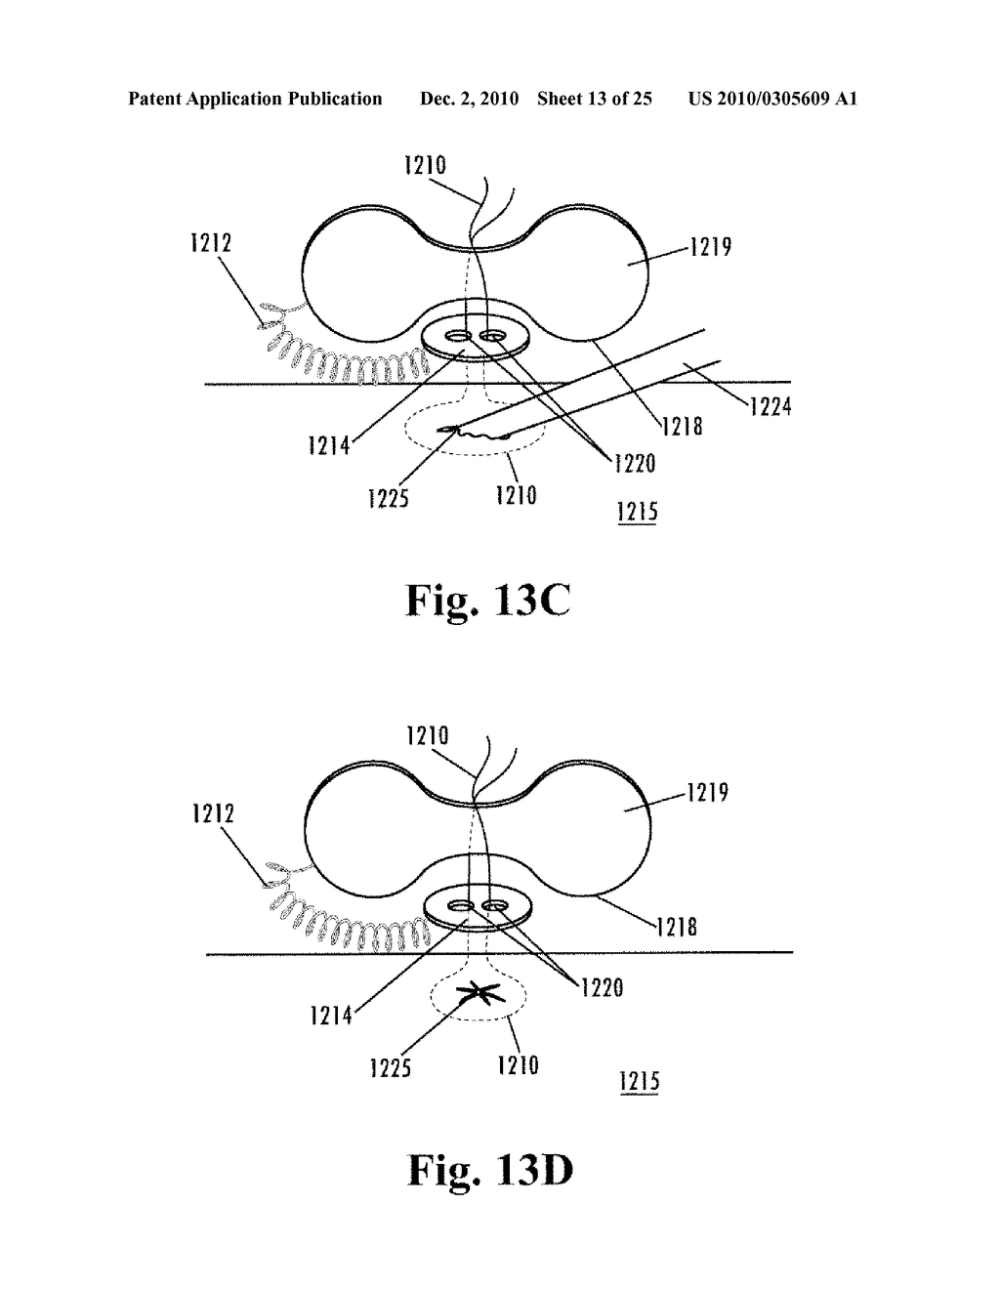 medium resolution of implantable purse string suture tensioning device diagram schematic and image 14